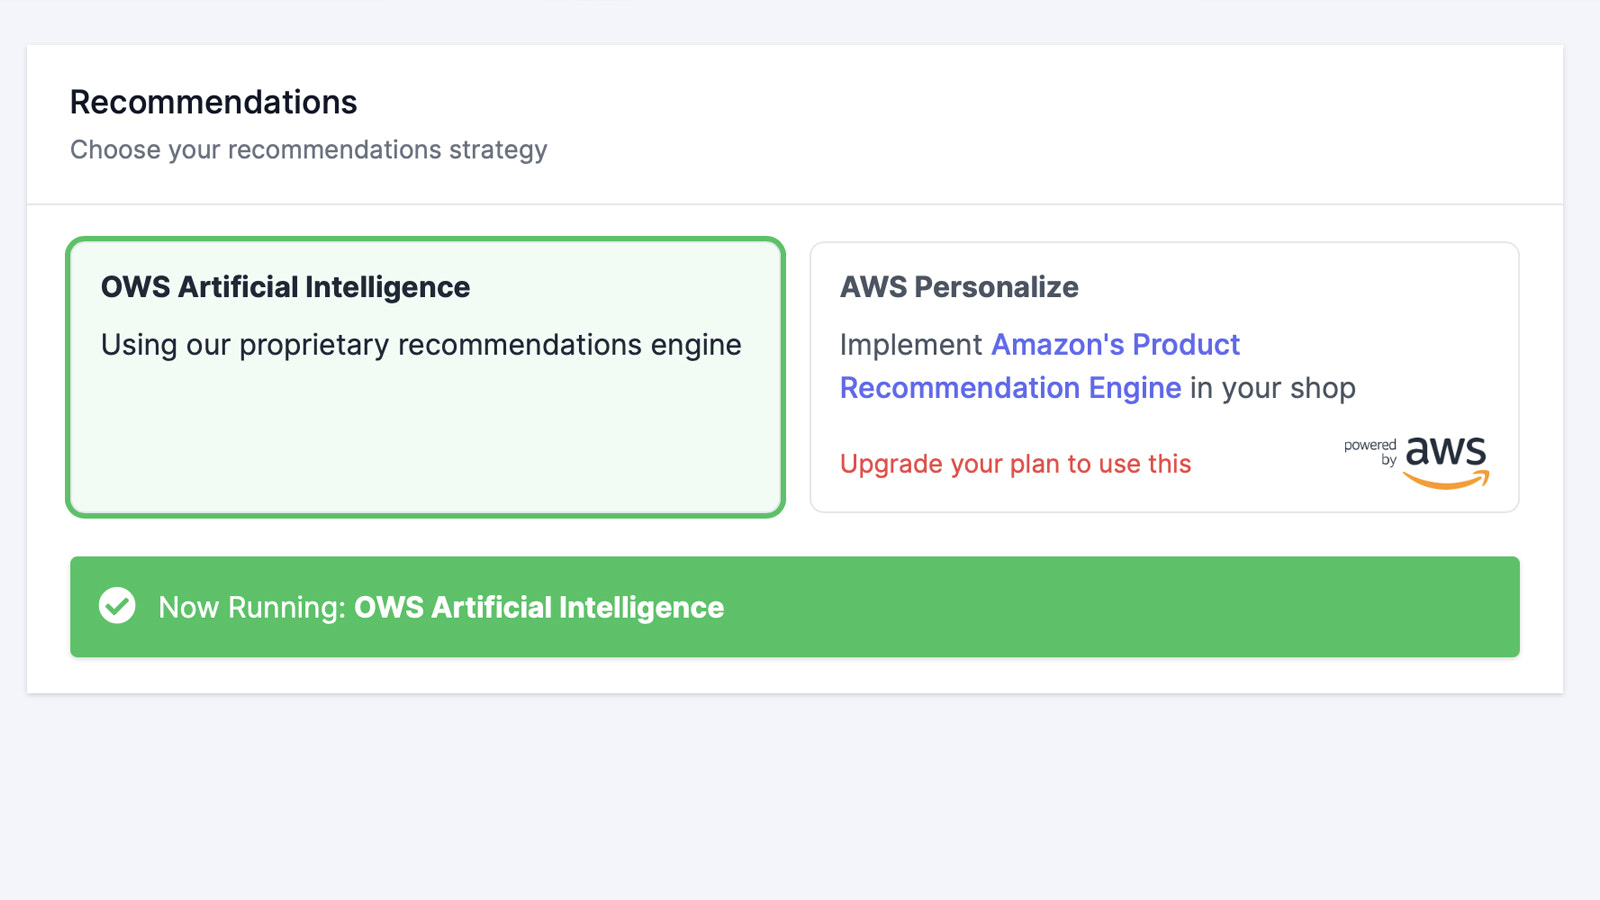 AWS Recommendations